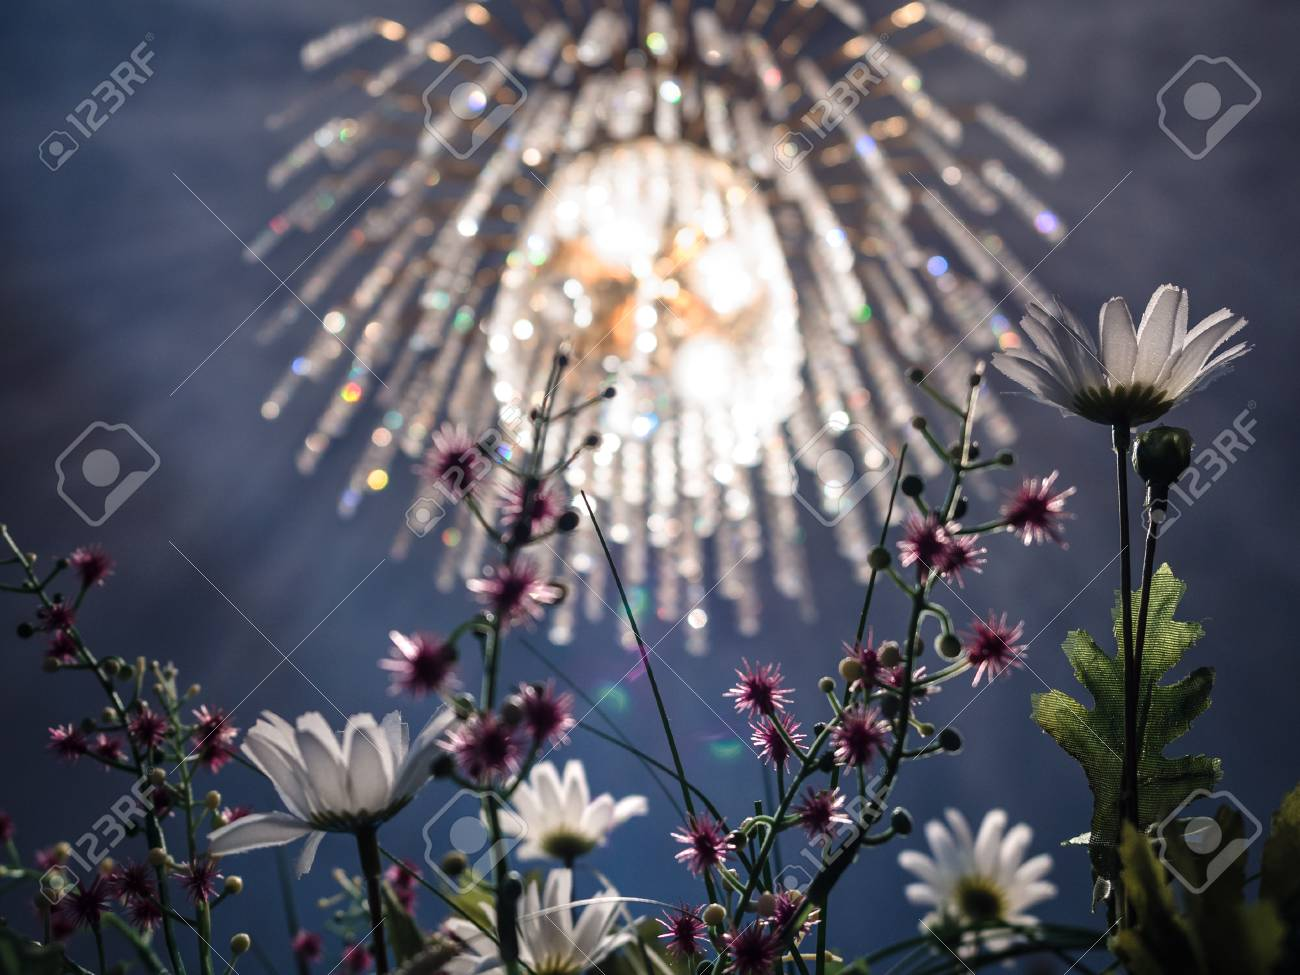 Crystal Chandelier With Golden Light And Artificial Flowers Stock Photo 86794754